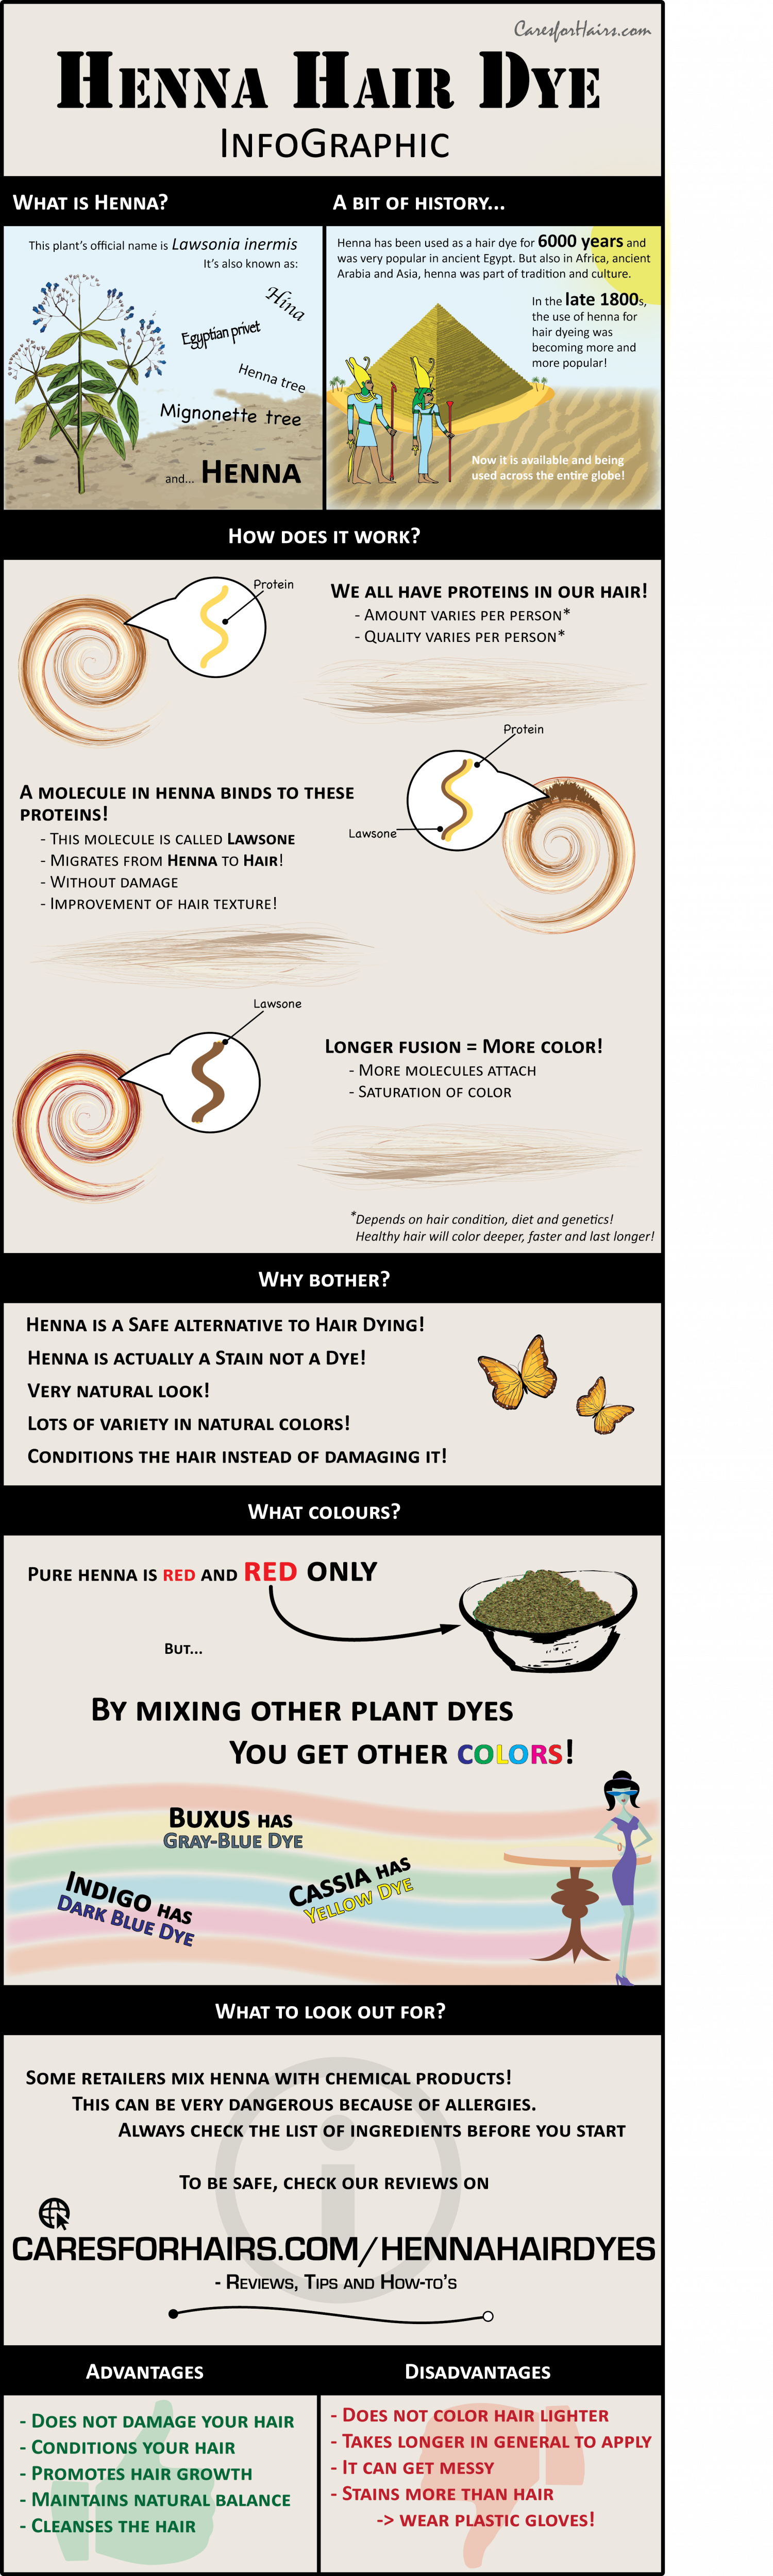 Henna Hair Dye Infographic Infographic